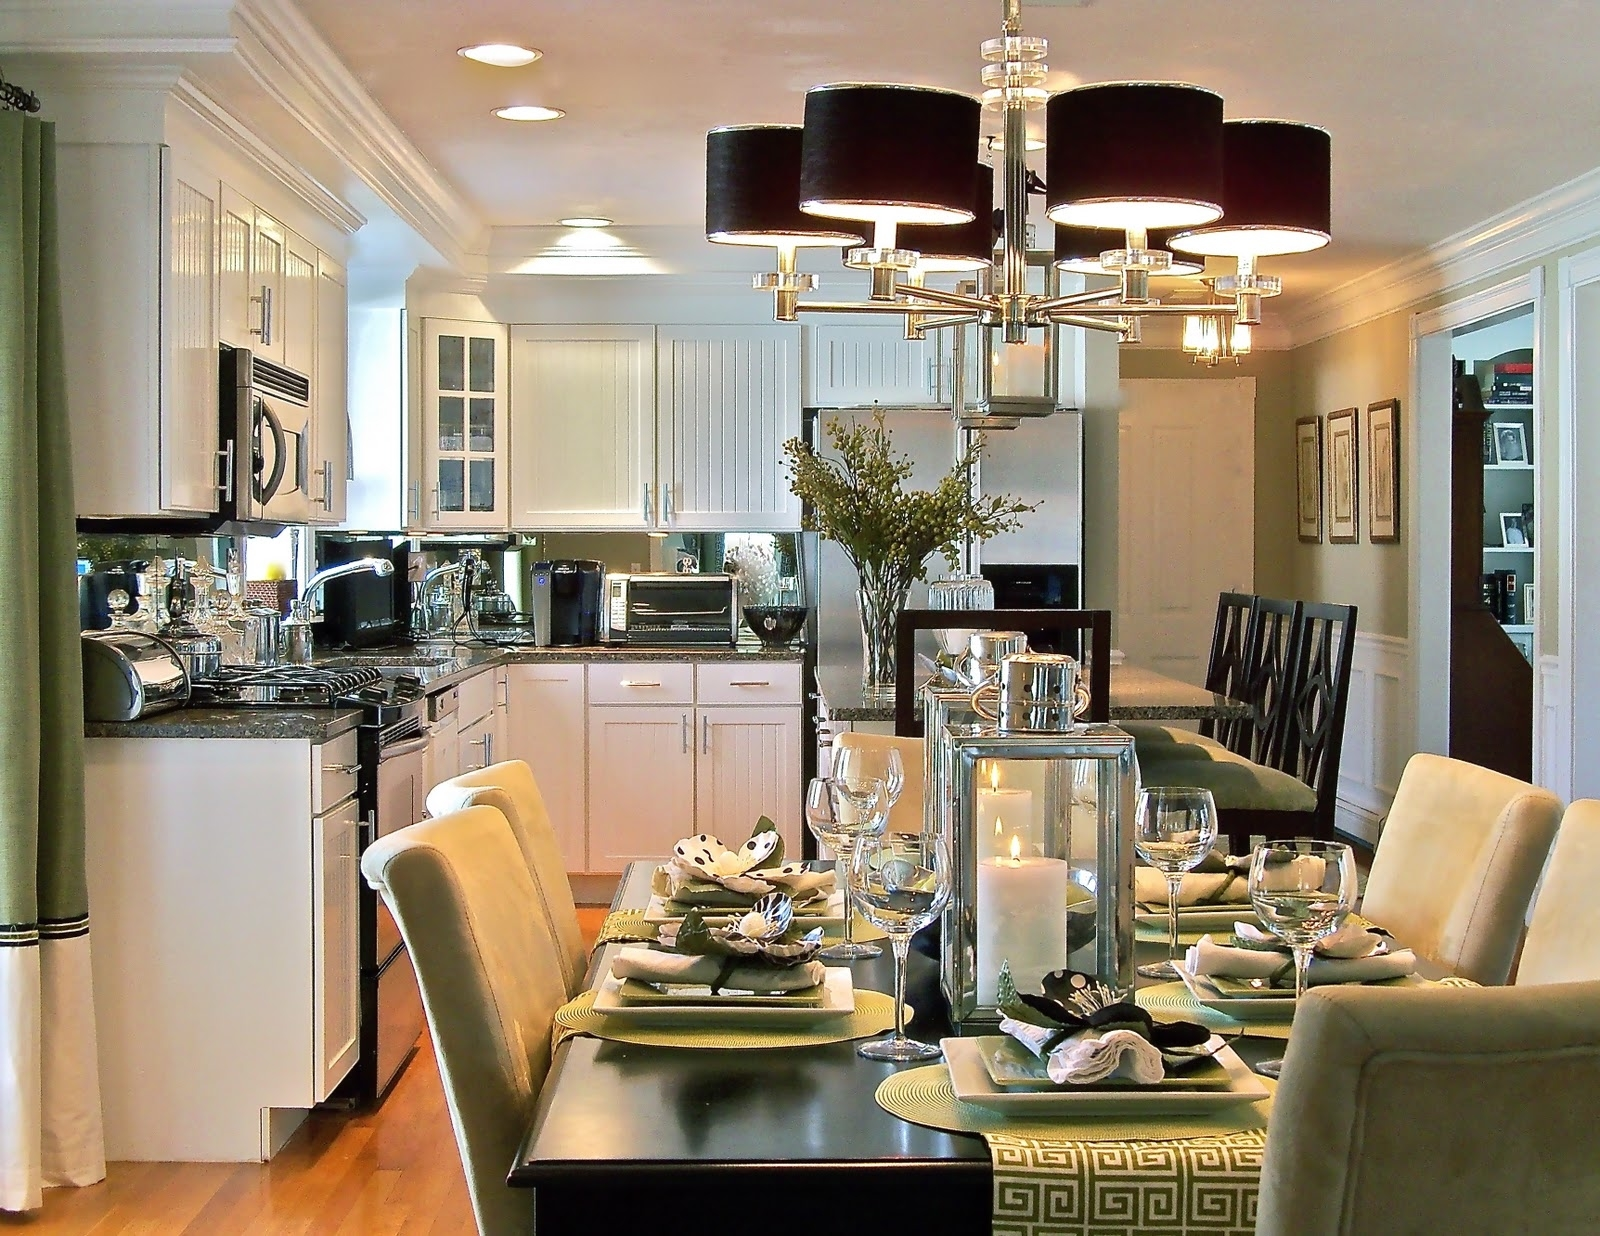 Featured Image of Admirable Dining Room And Kitchen Interior Combination